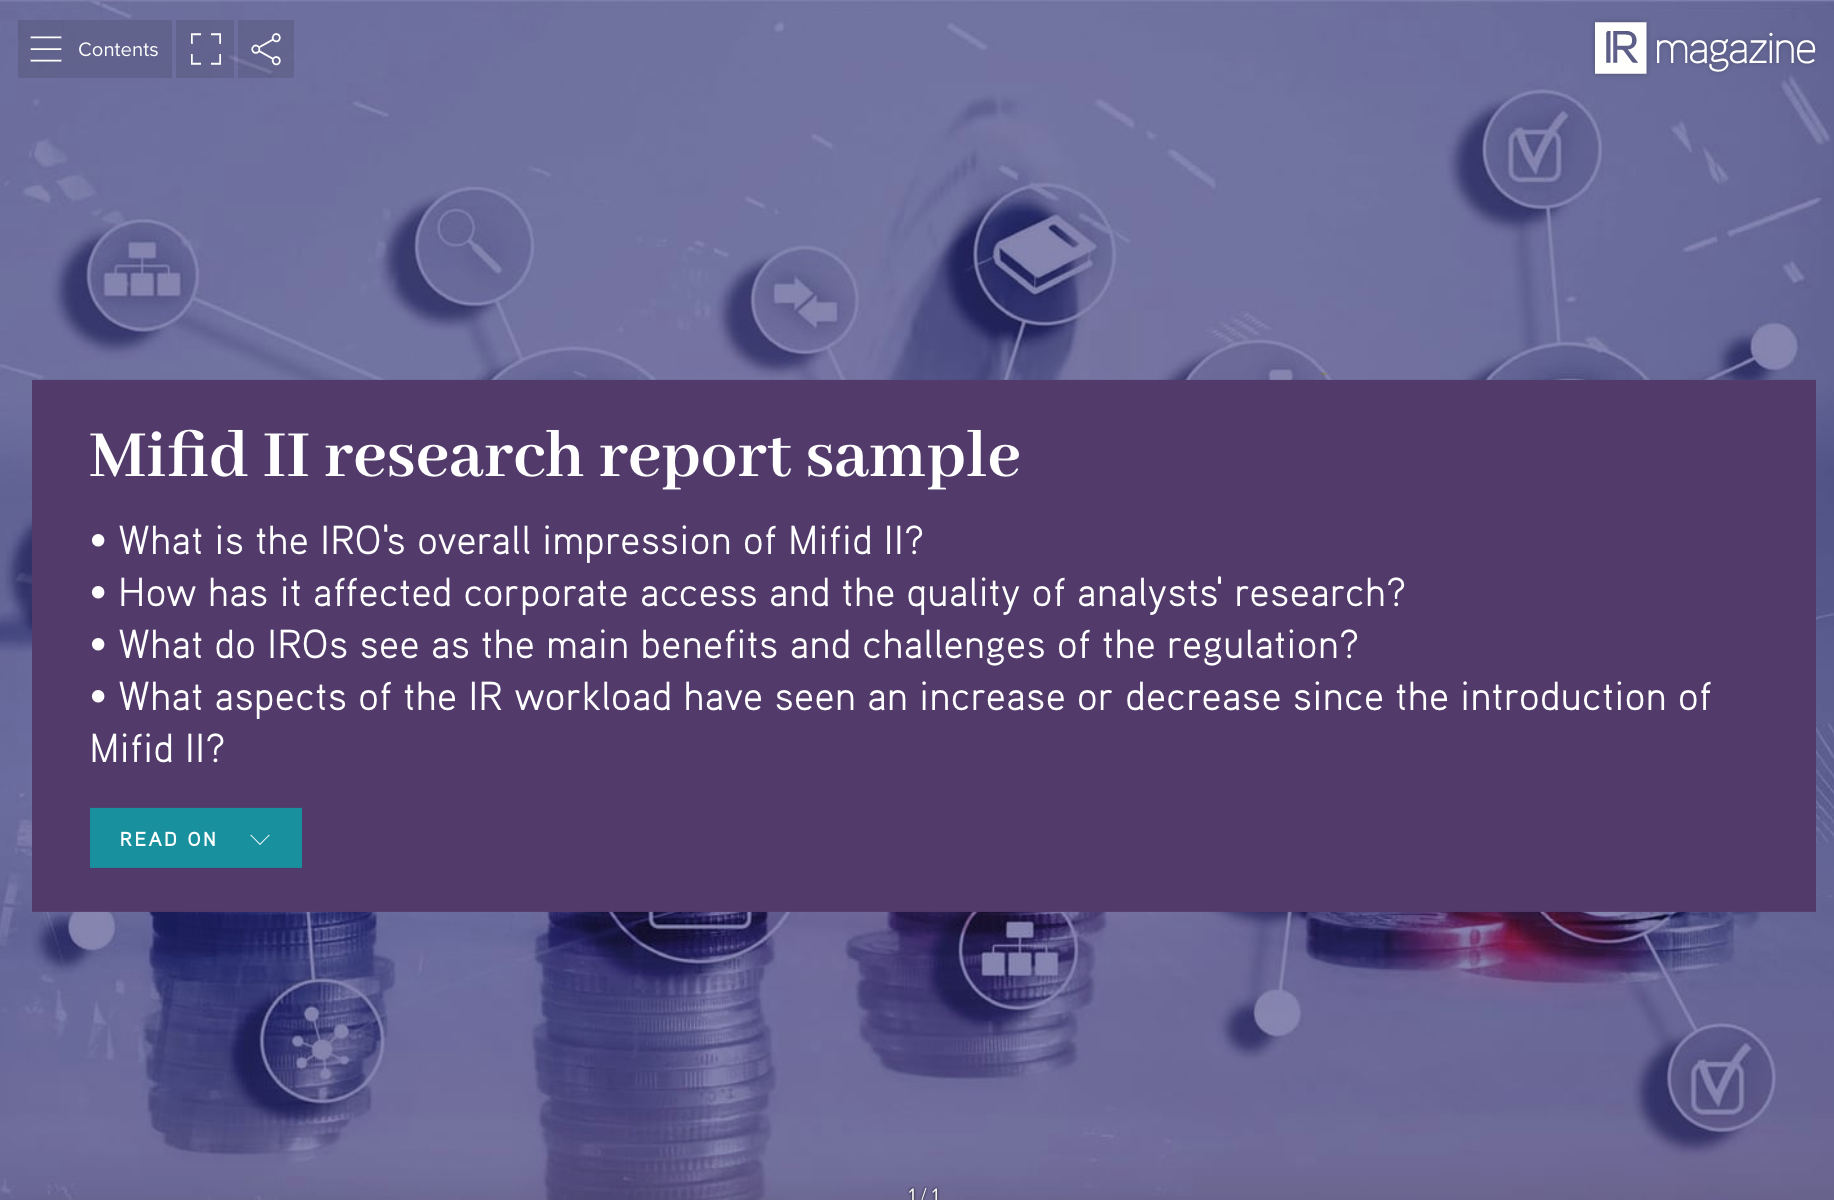 Mifid II research report